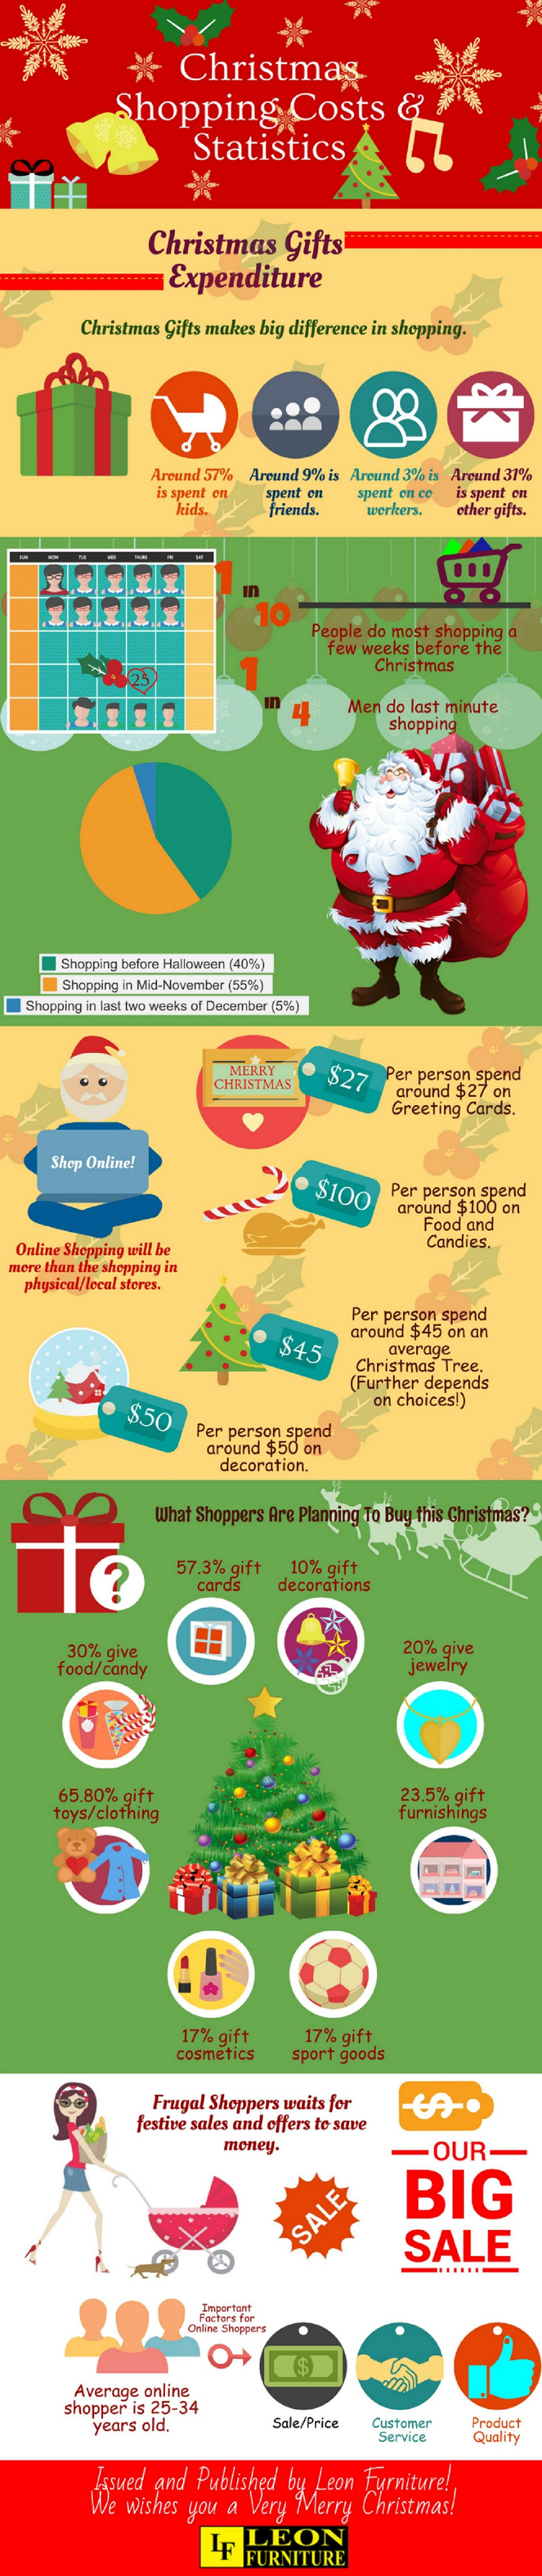 Christmas-Shopping-Costs-Statistics-infographic-plaza